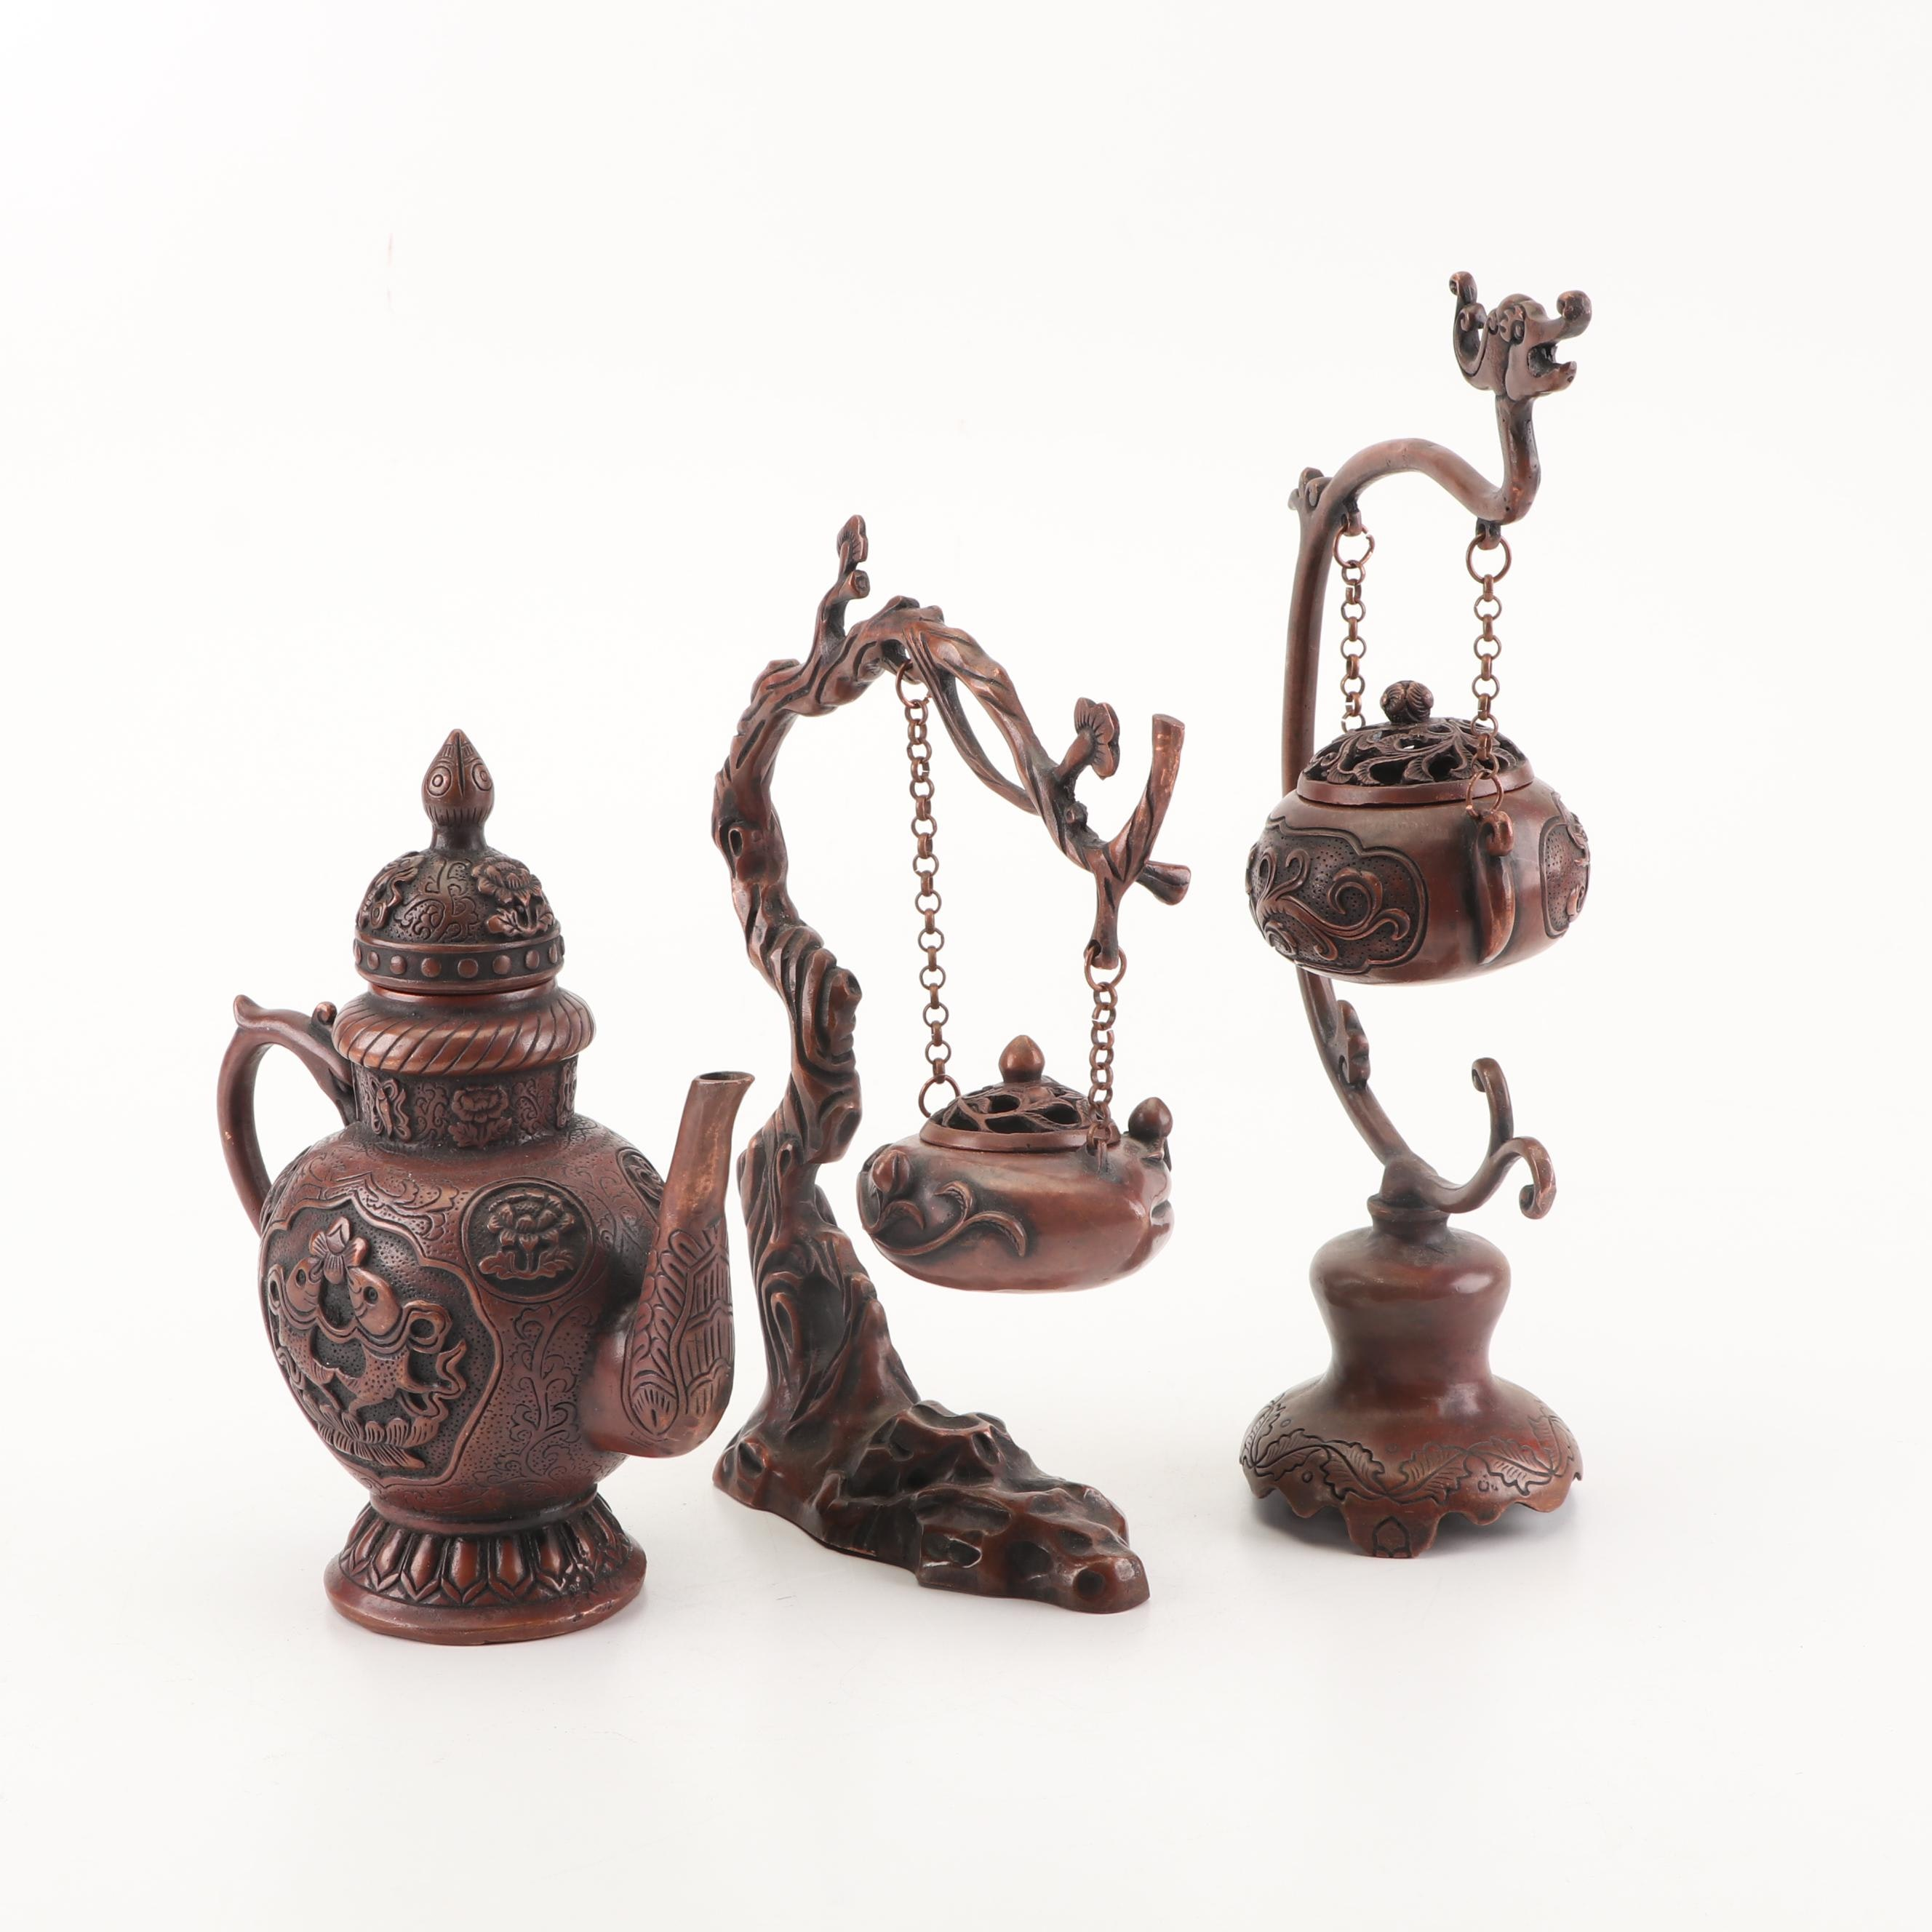 Chinese Decorative Metal Teapot and Hanging Incense Burners